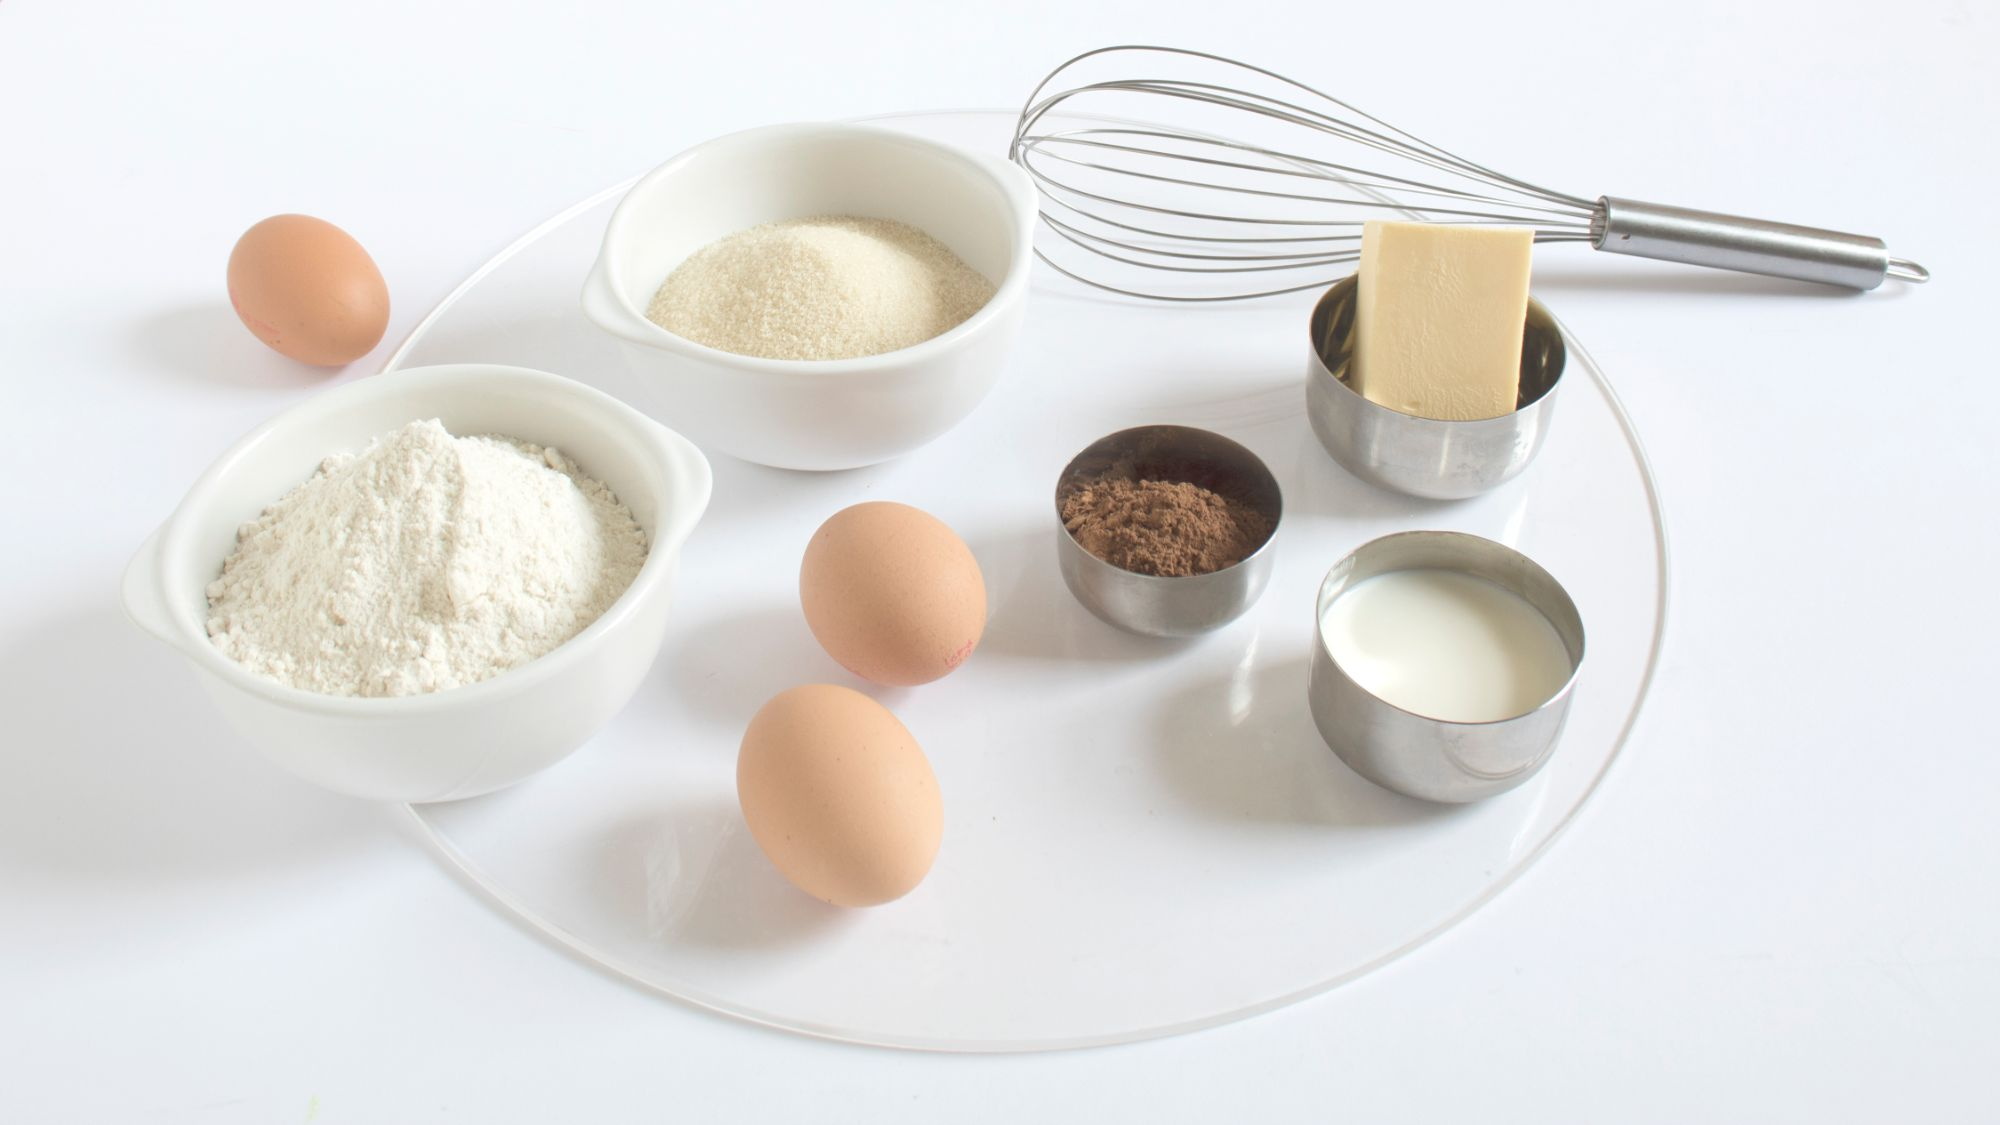 ingedients to bake a delicios cake